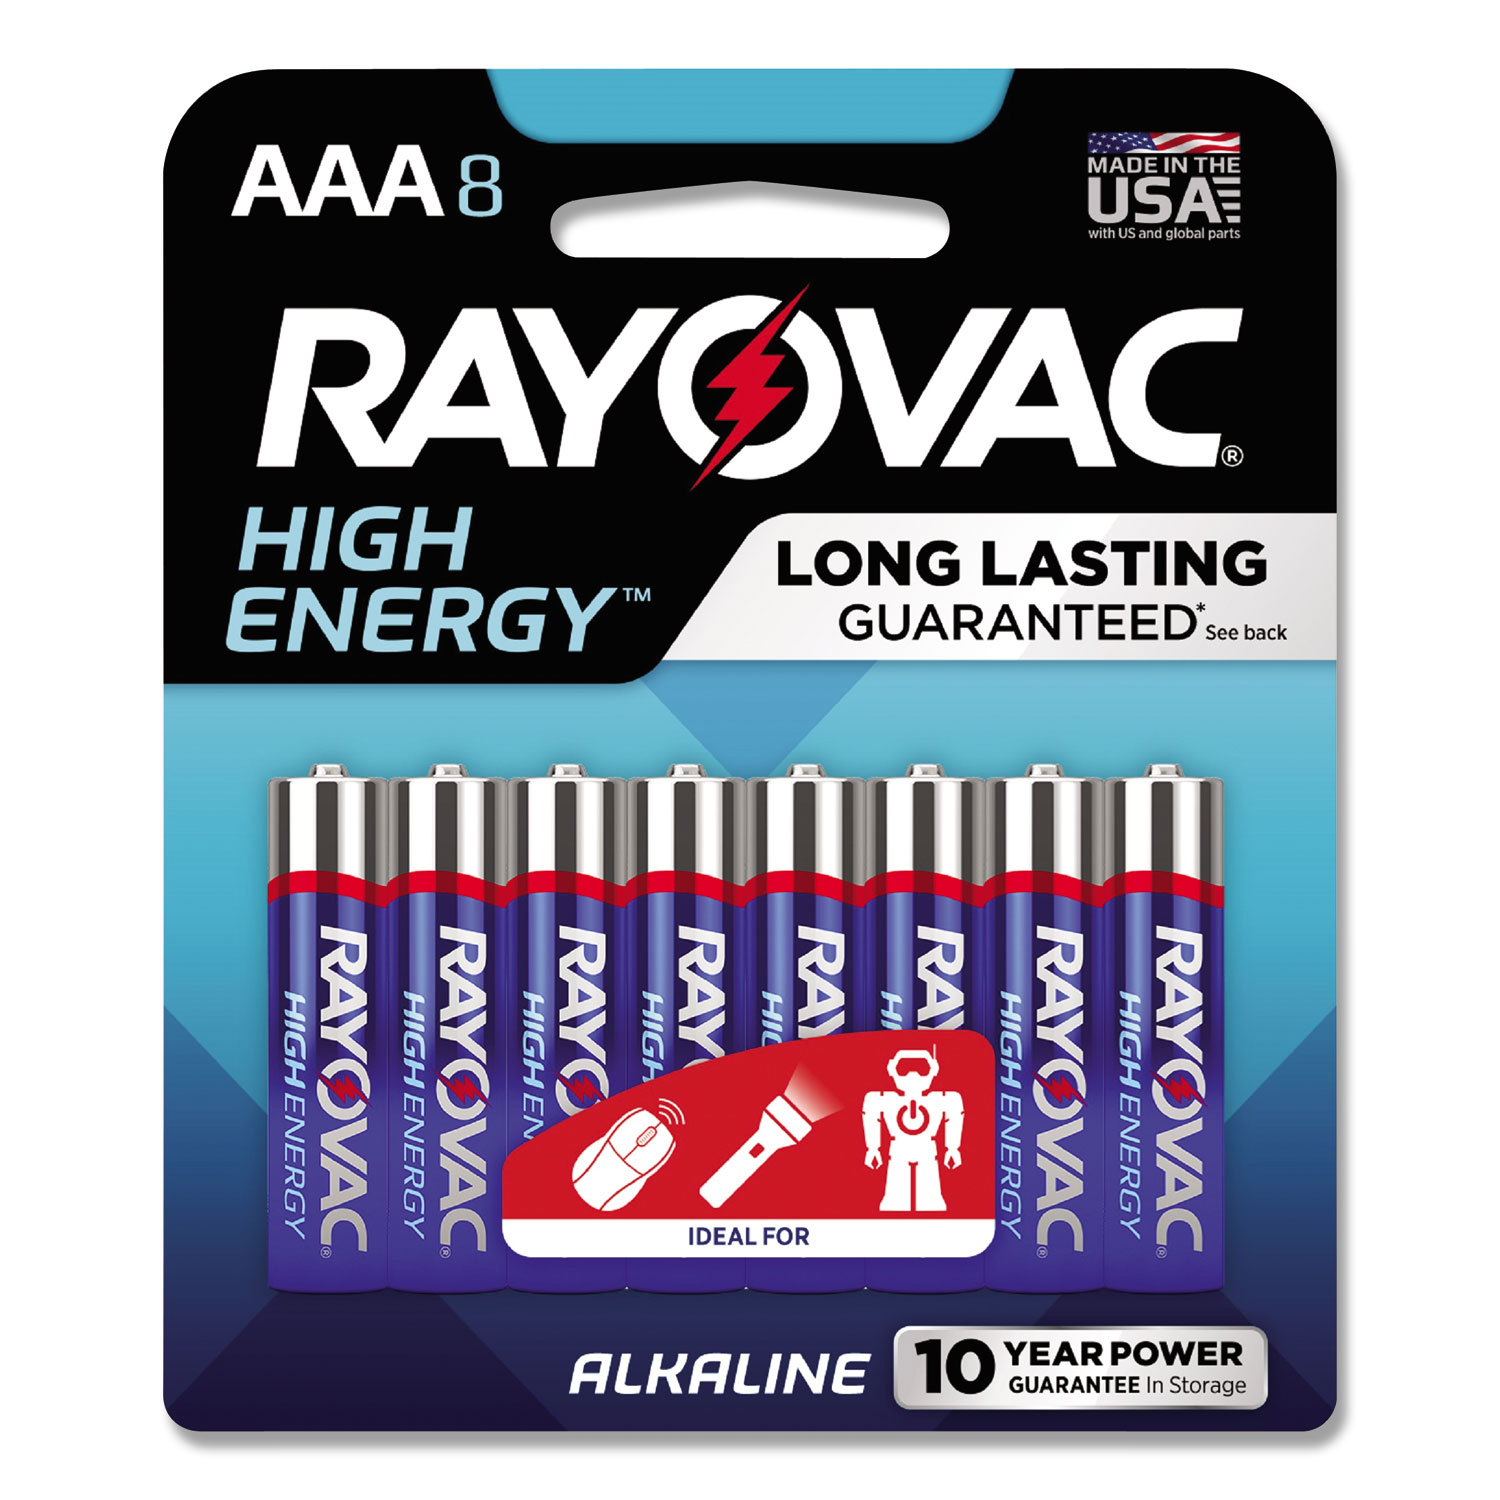 High Energy Premium Alkaline Battery, AAA, 8/Pack